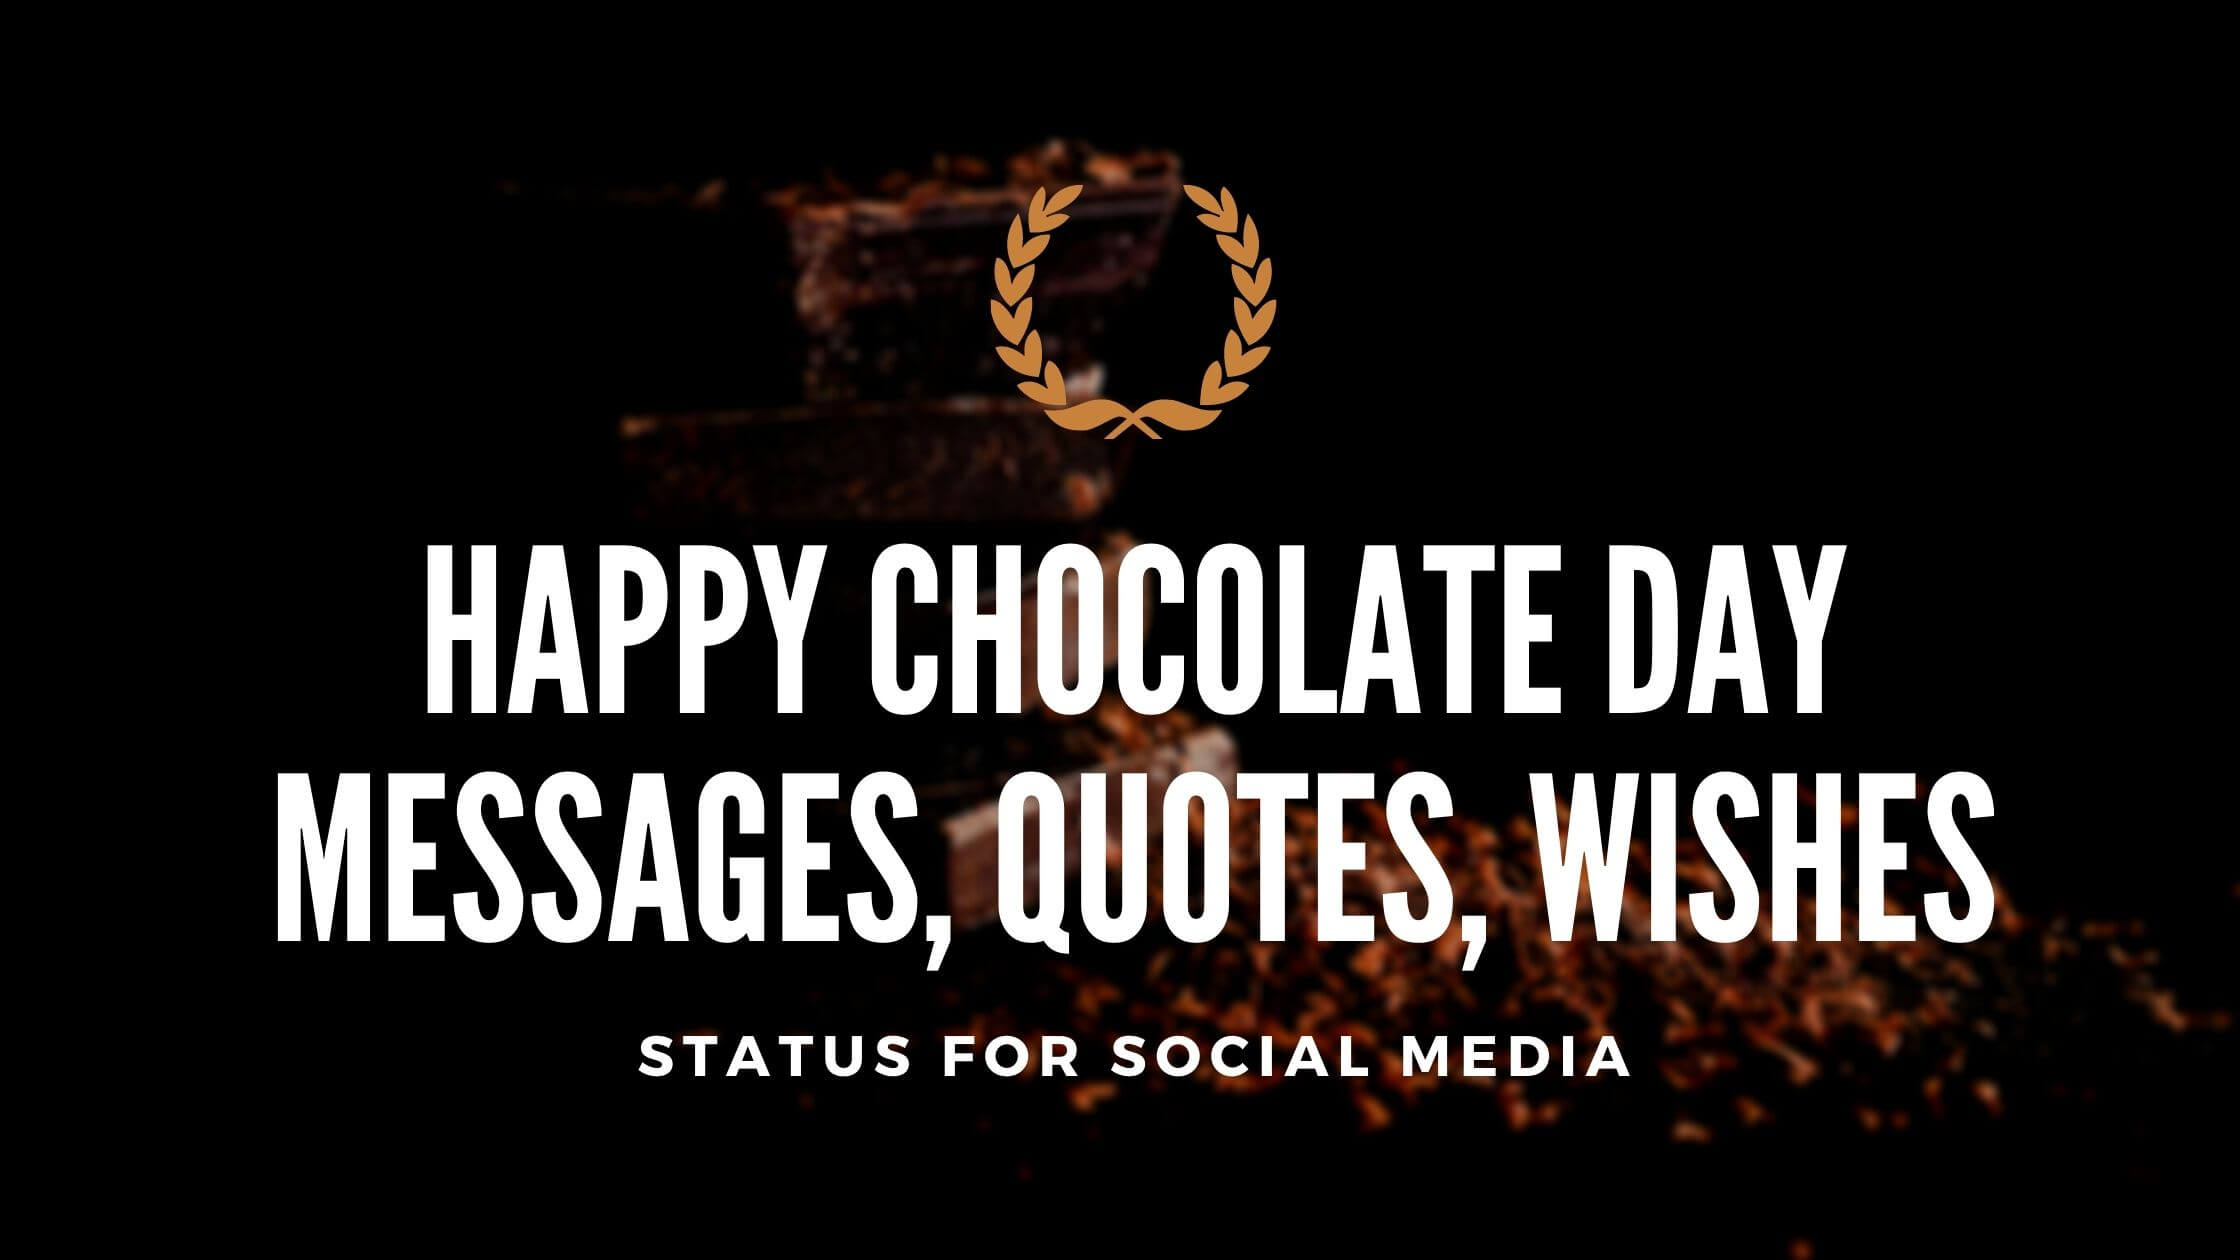 Happy Chocolate Day Messages, Quotes, Wishes IMAGES